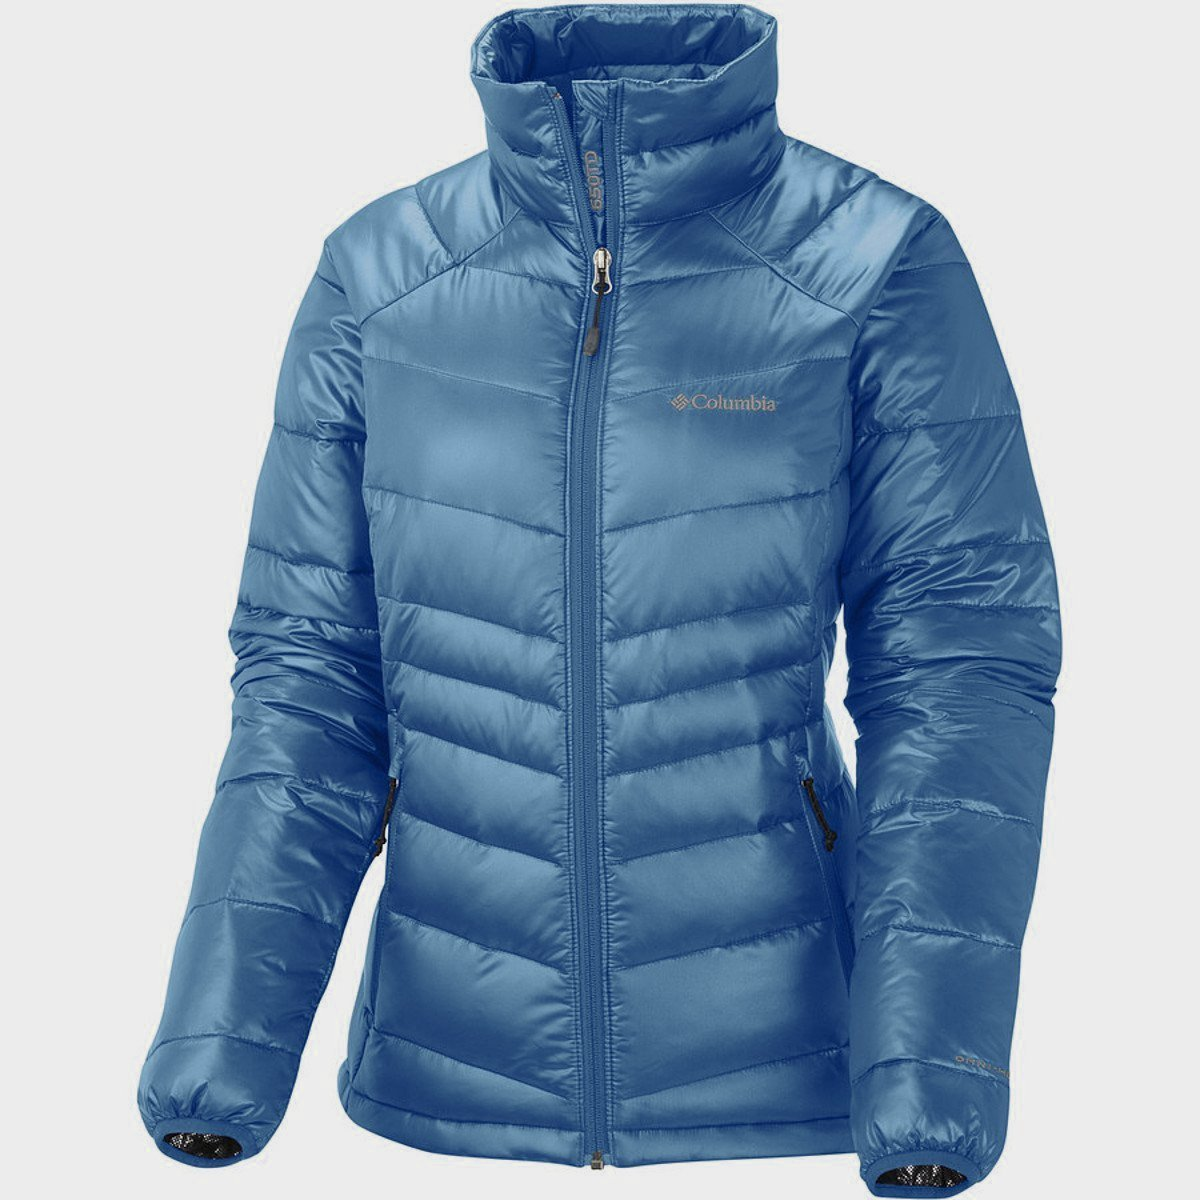 Columbia Women's Gold 650 TurboDown Radial Down Jacket, X-Small, Bluebell